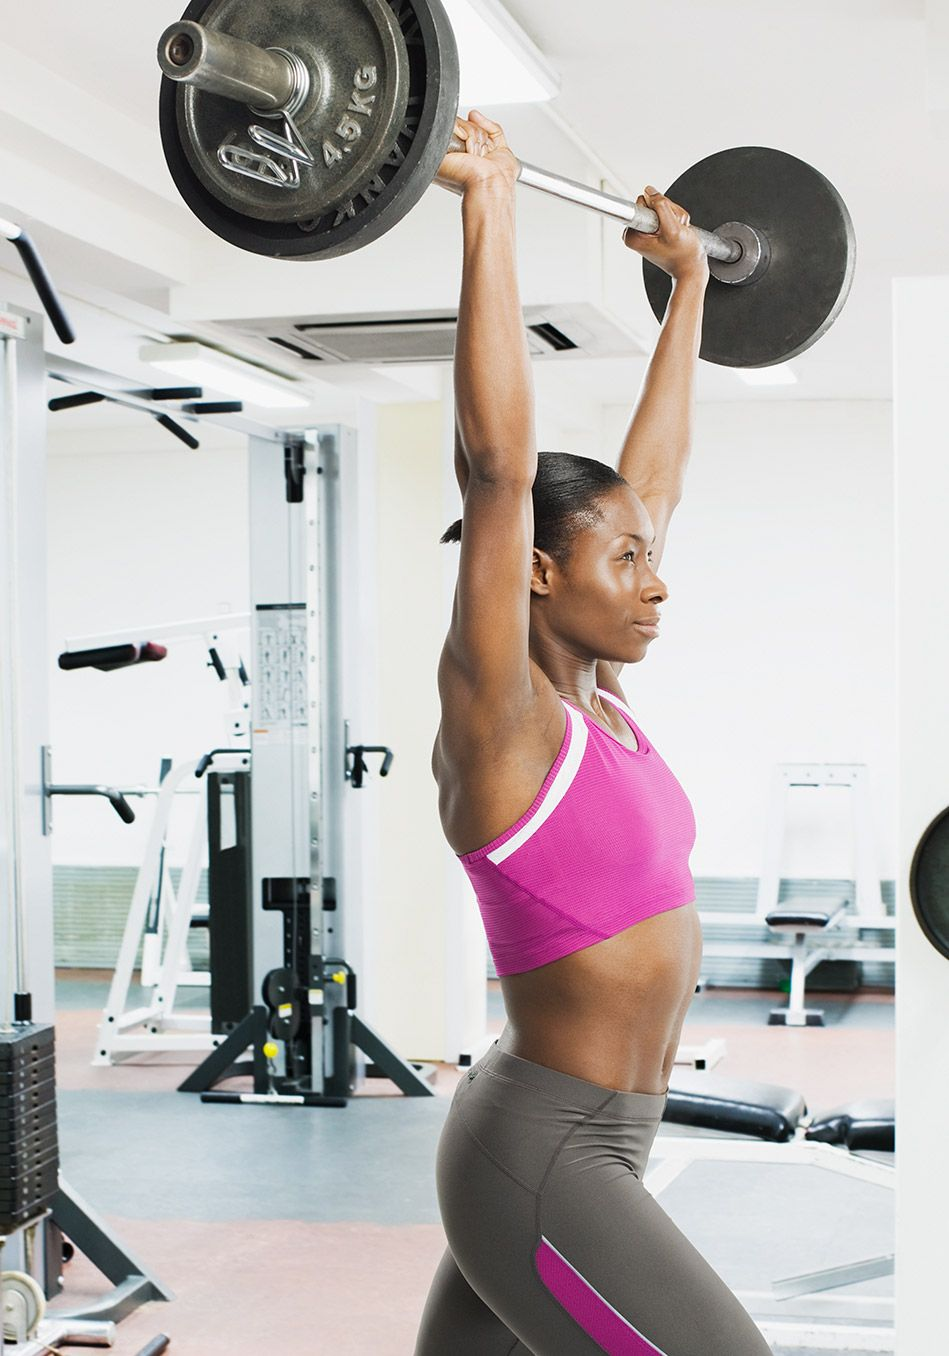 The Strength-Training Playlist Thatll Help You Sculpt Sexy Summer Muscles